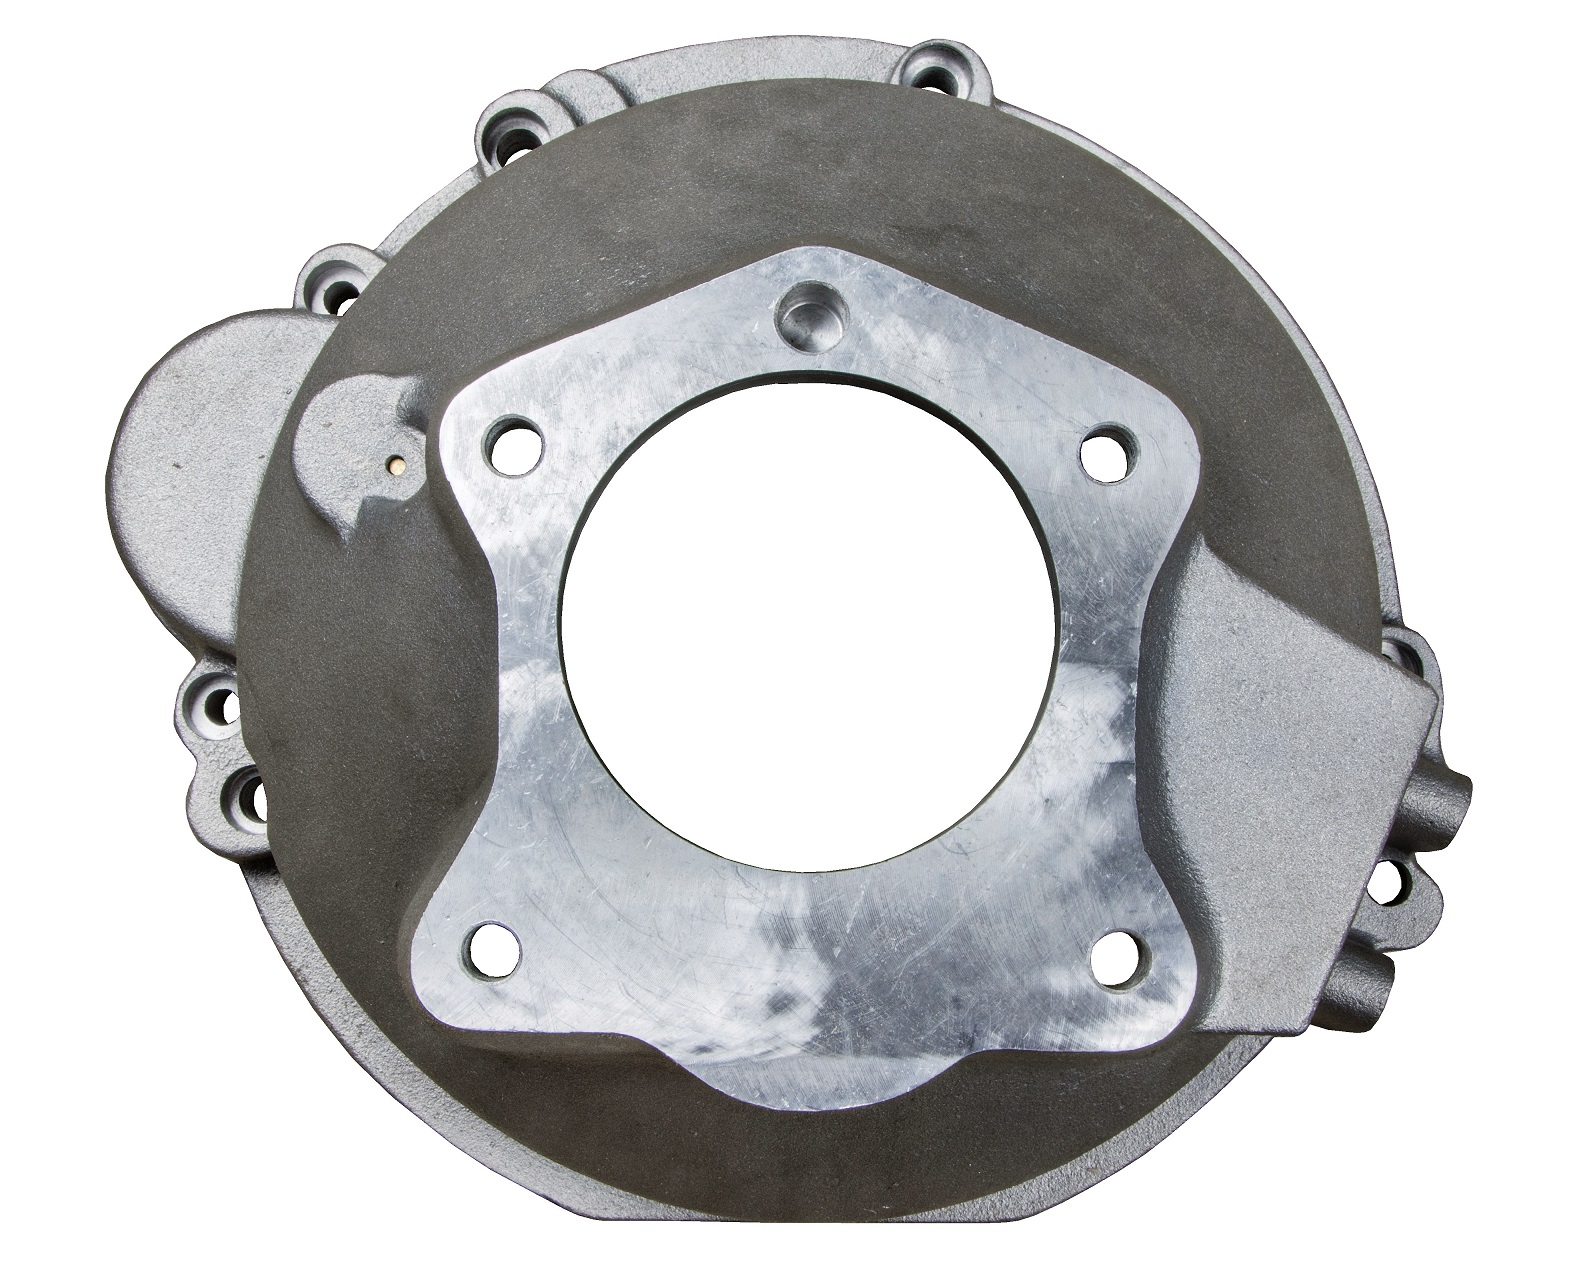 Details about Toyota Corolla 4AGE Engine to For Ford Type 9 / Rocket Alloy  Bellhousing Q-Relea